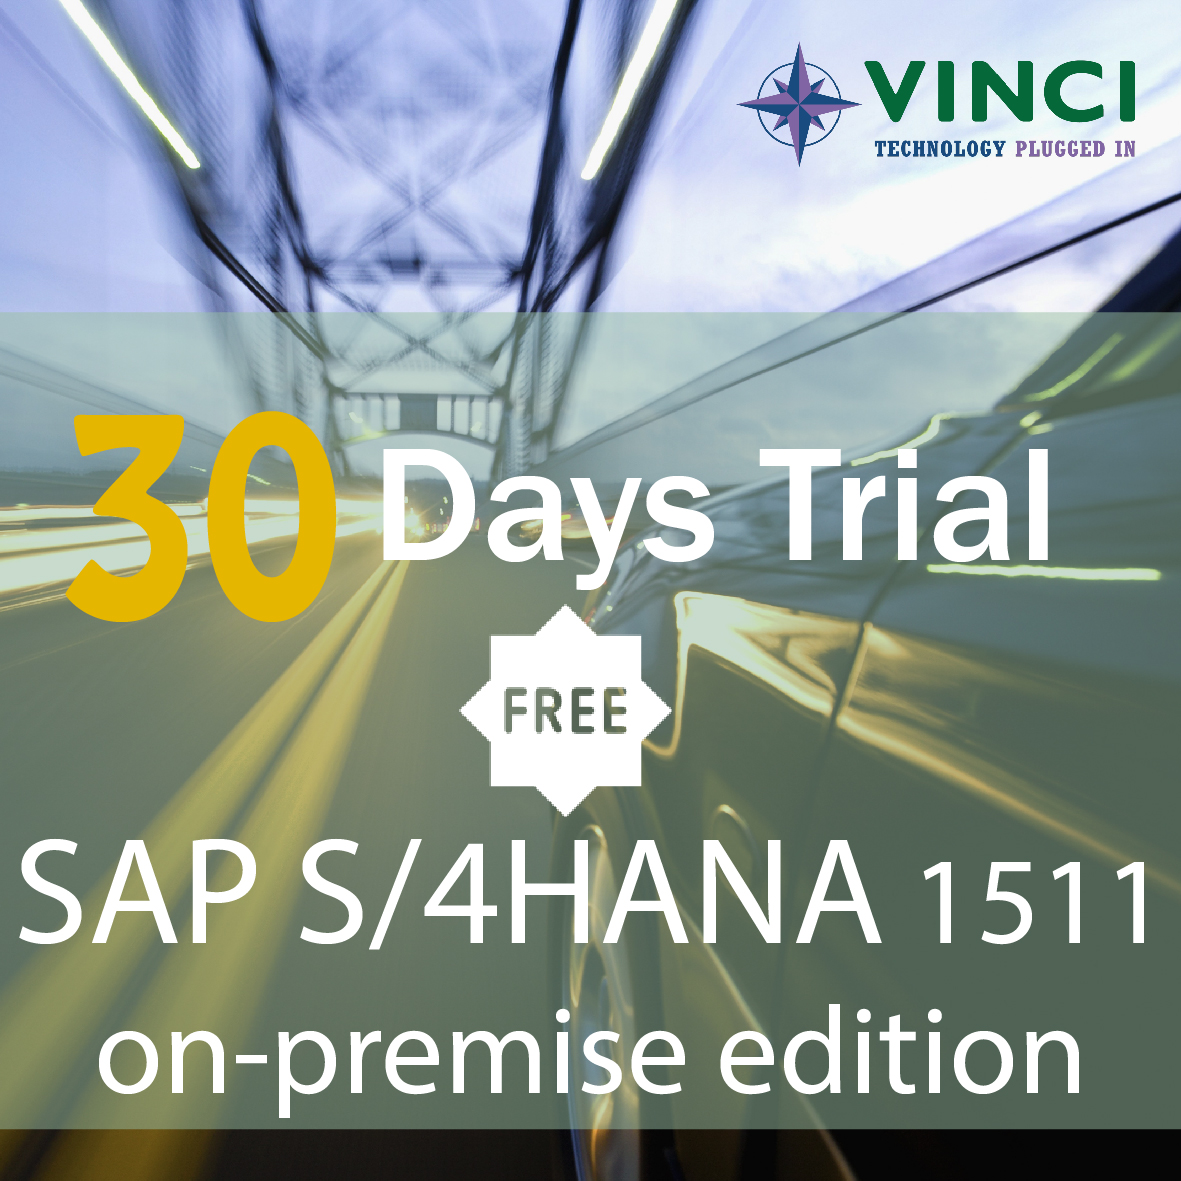 SAP S/4HANA Free Trial 30 days